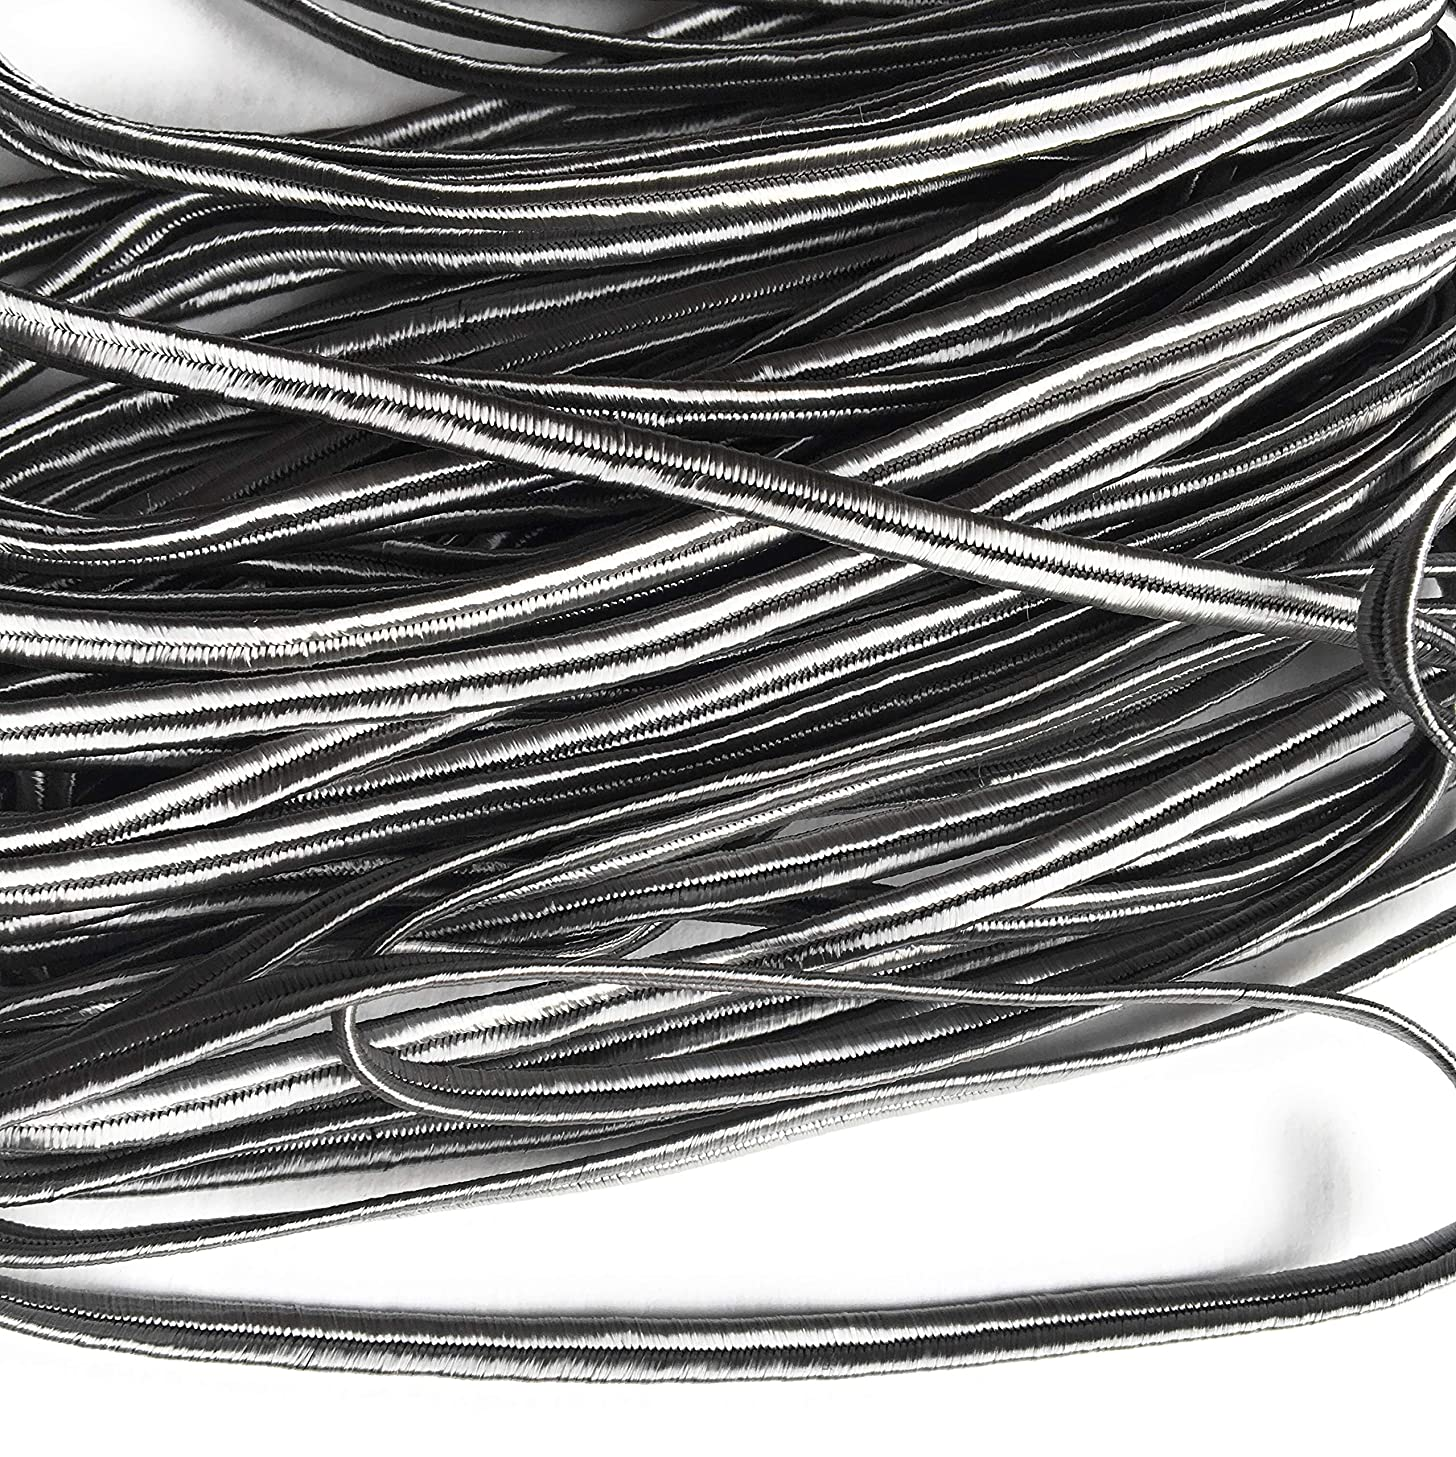 4mm Grey Soutache Rayon Braided Cord Beading, Sewing,Quilting Trimming String 10 Yards